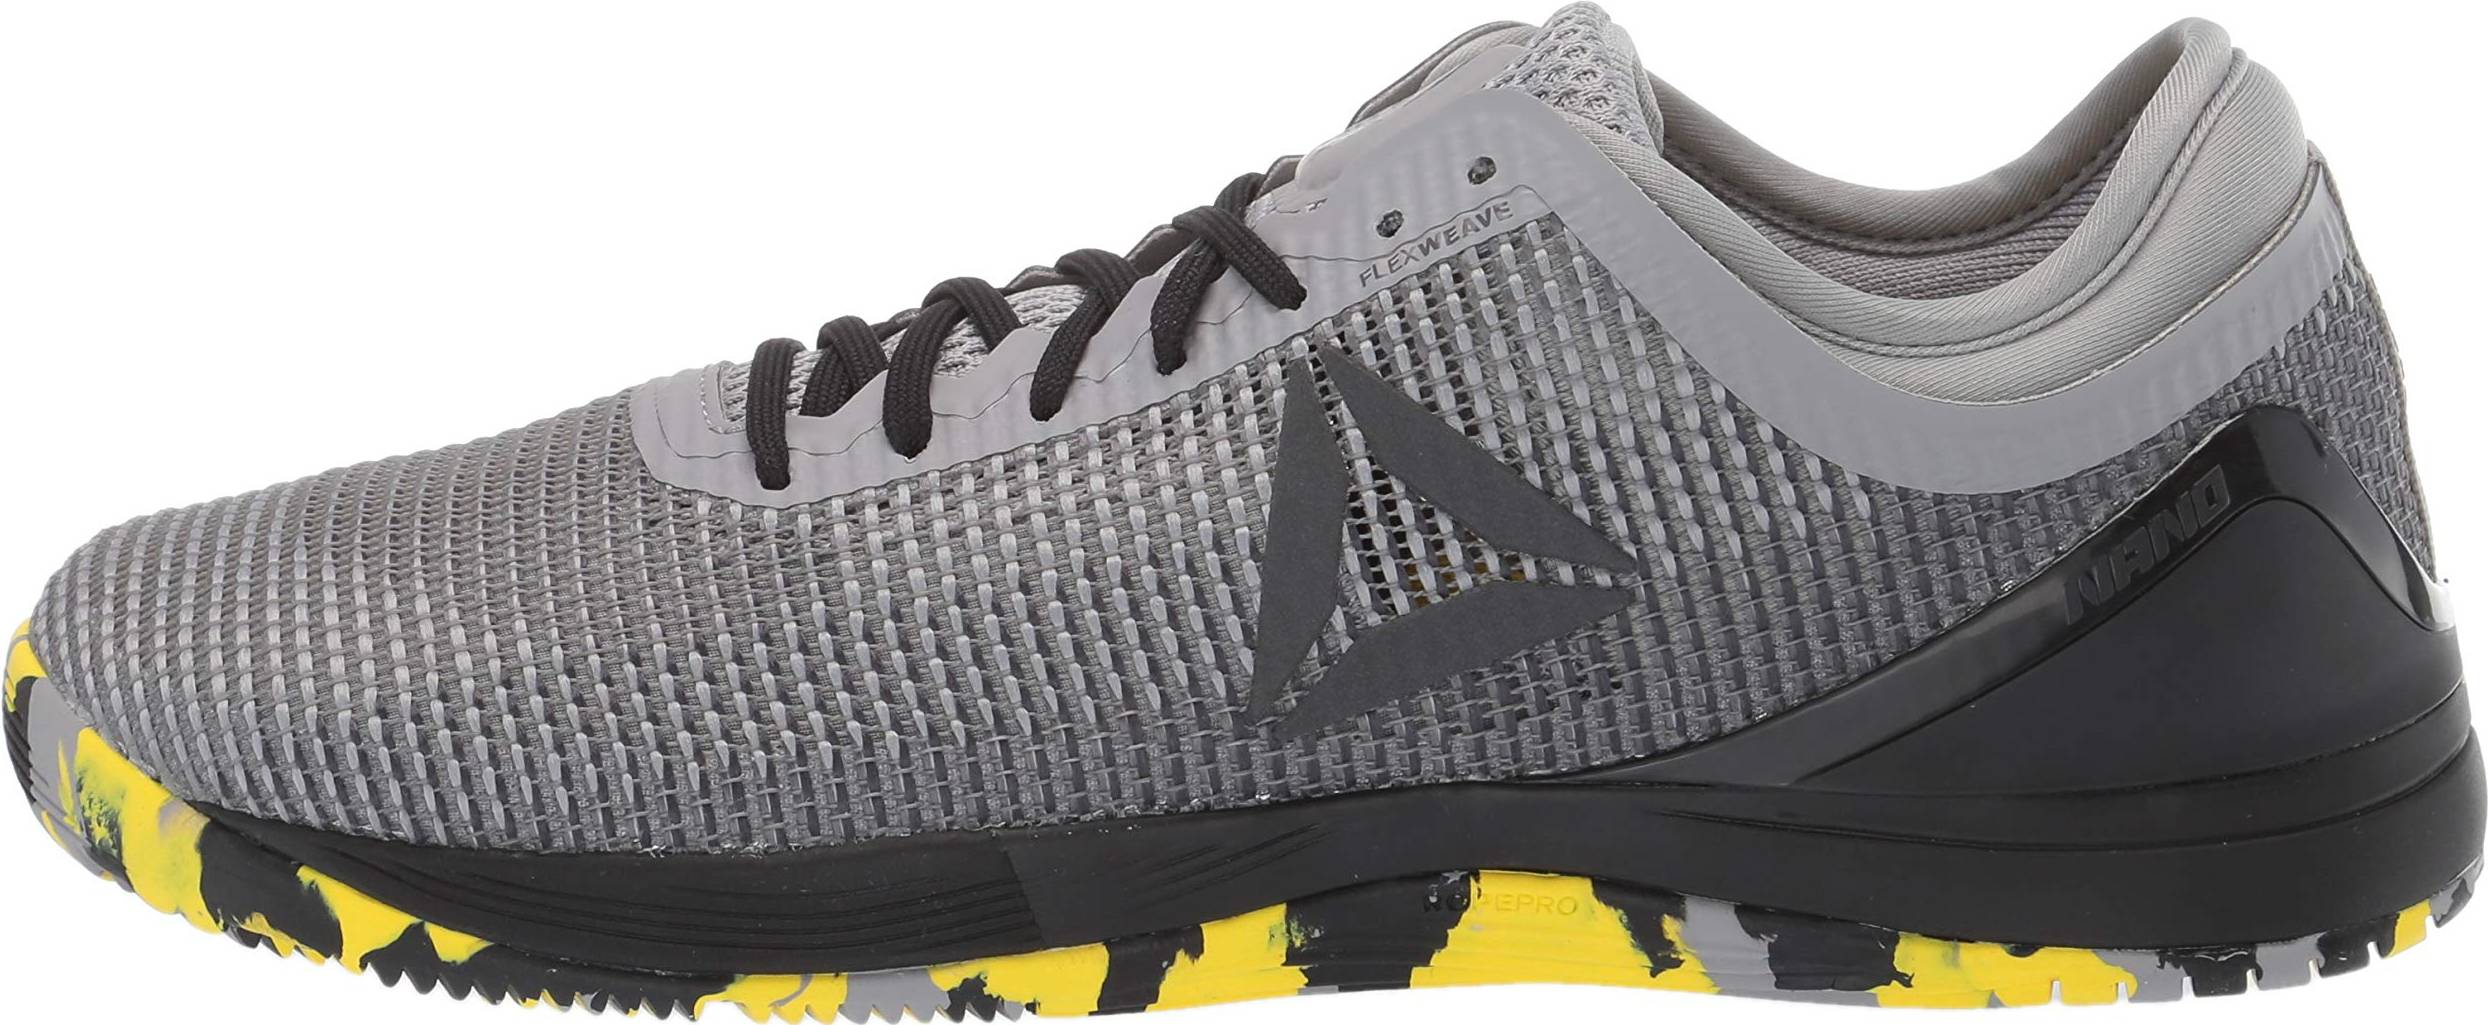 Save 56% on Lightweight Training Shoes